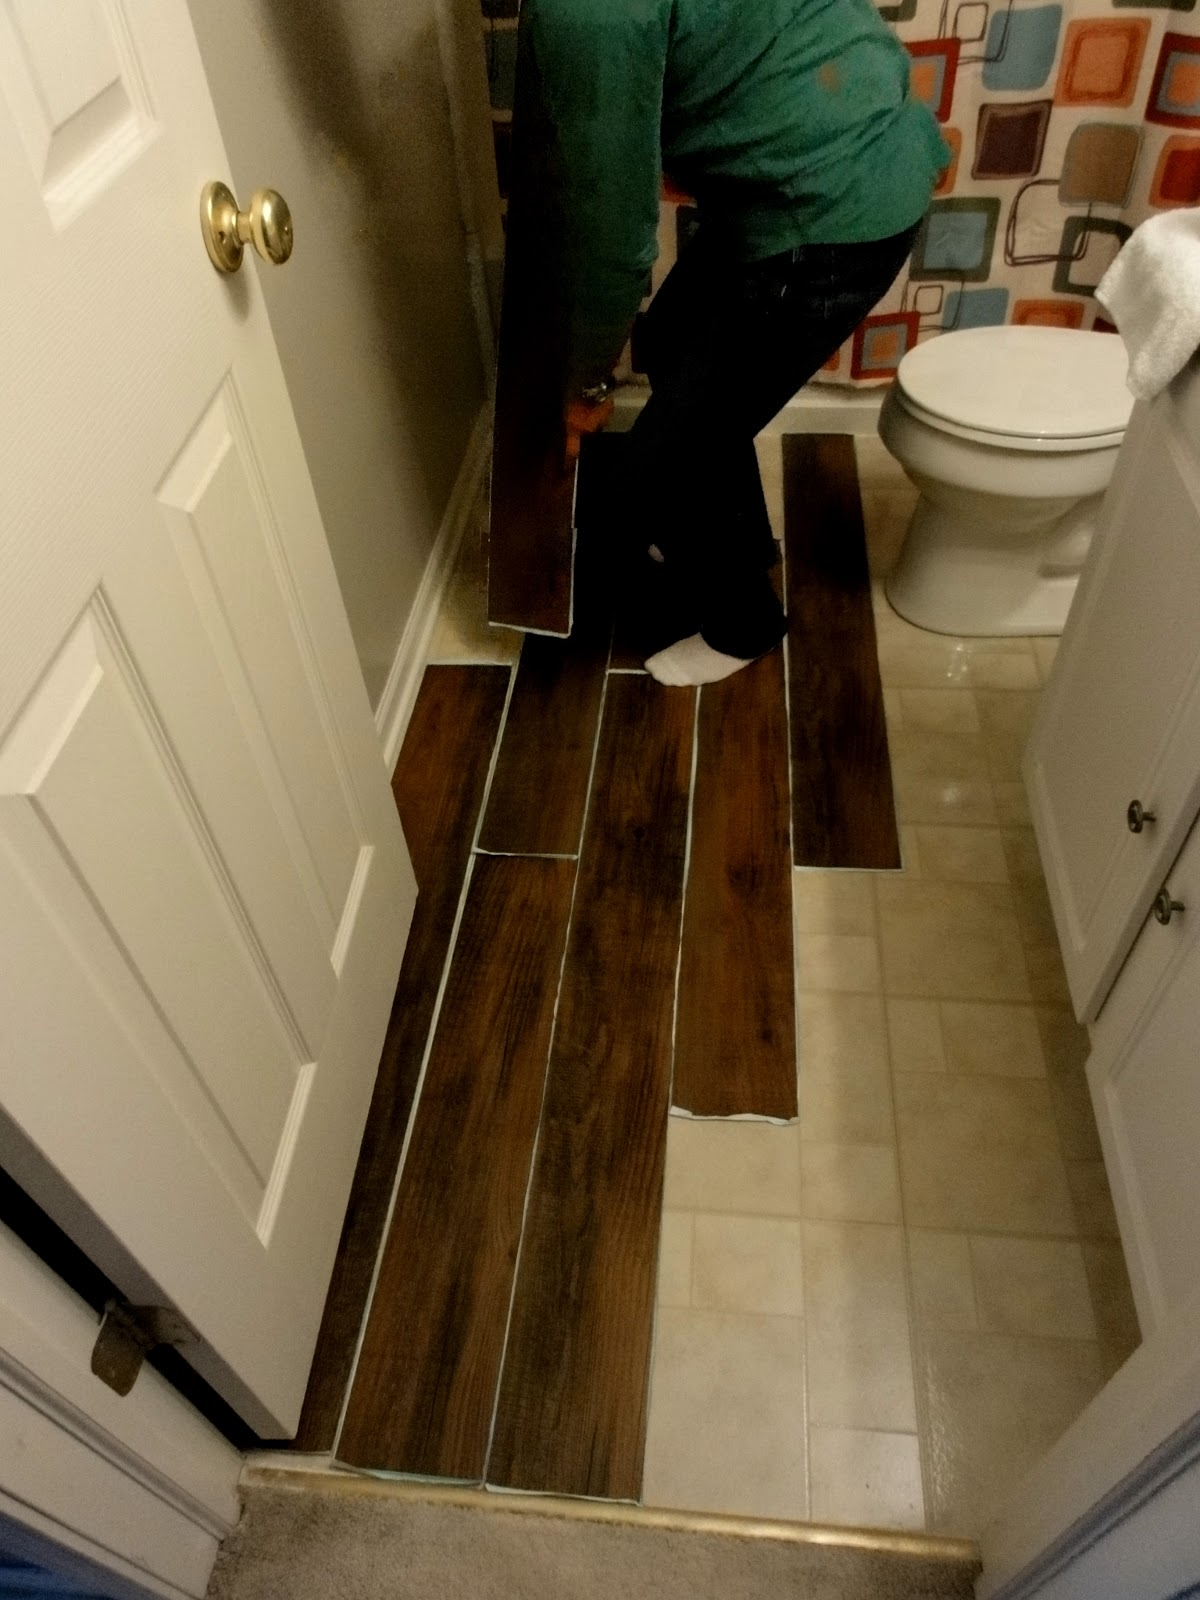 How to paint sinks and epoxy on pinterest for Paint vinyl floor bathroom